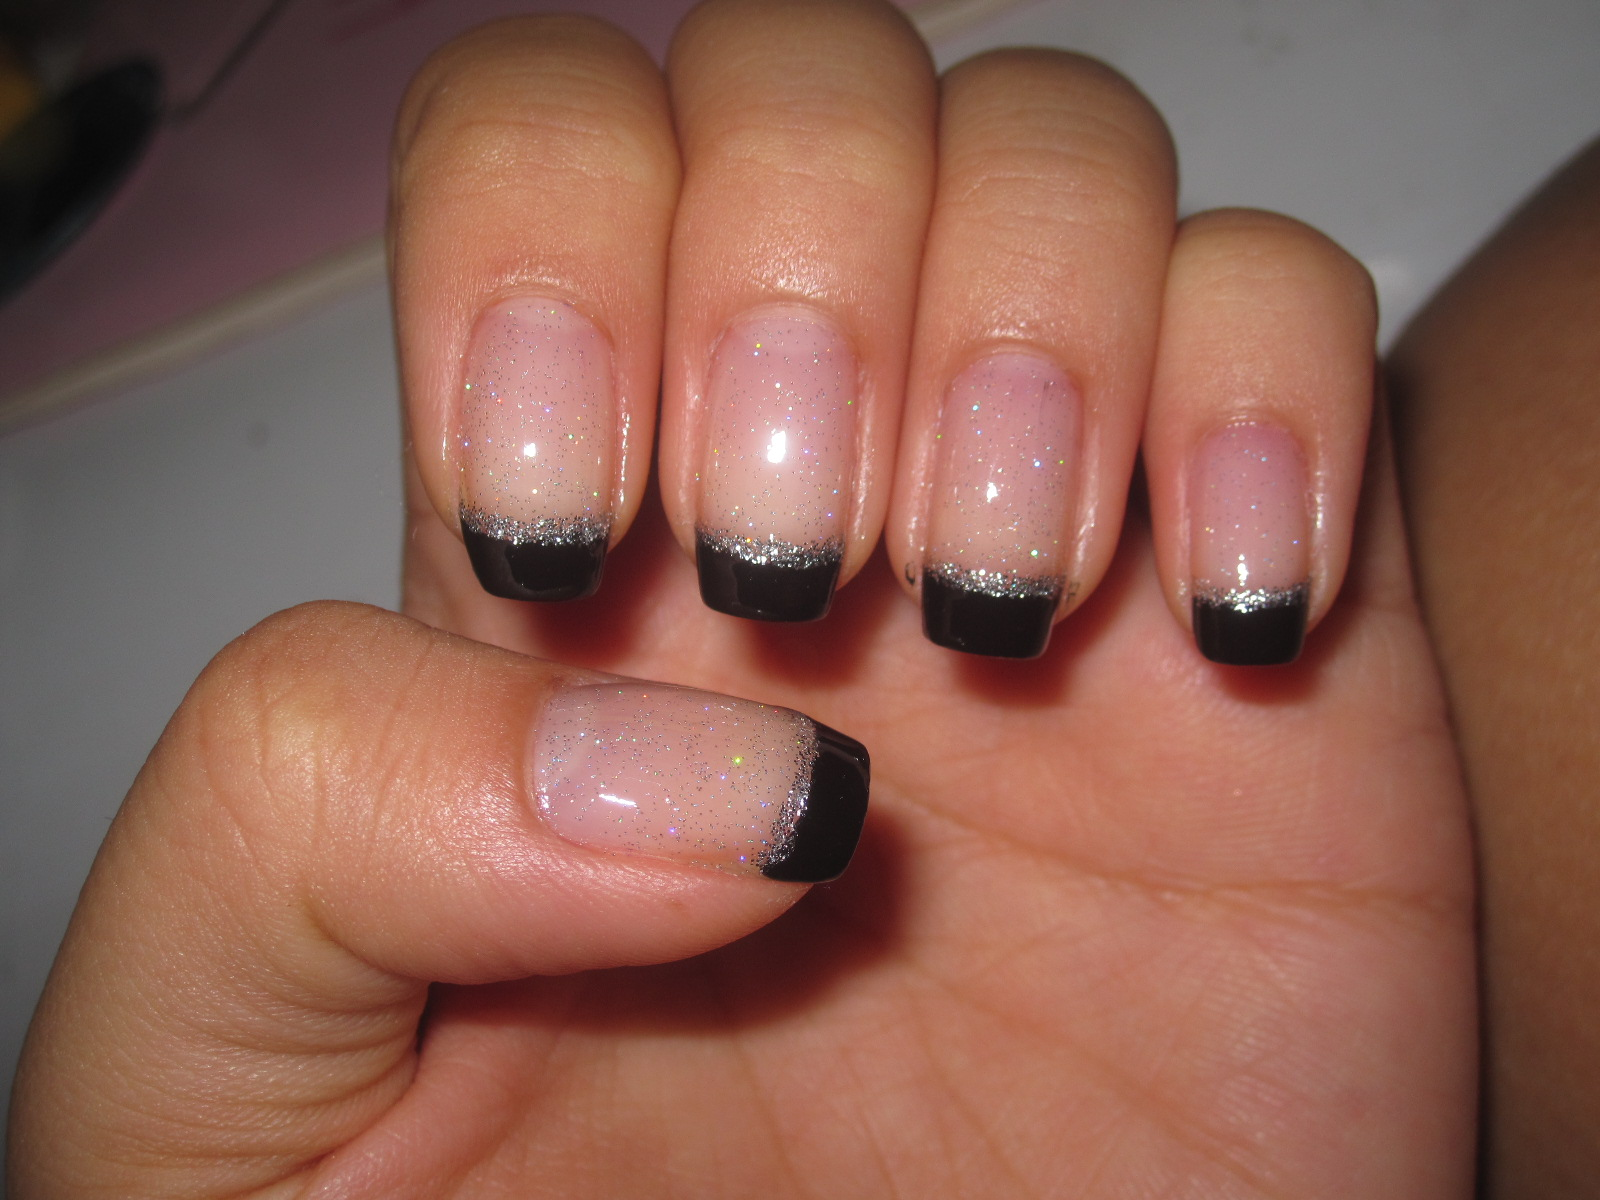 Jelly's Nails: Black French Tips with Silver Lining